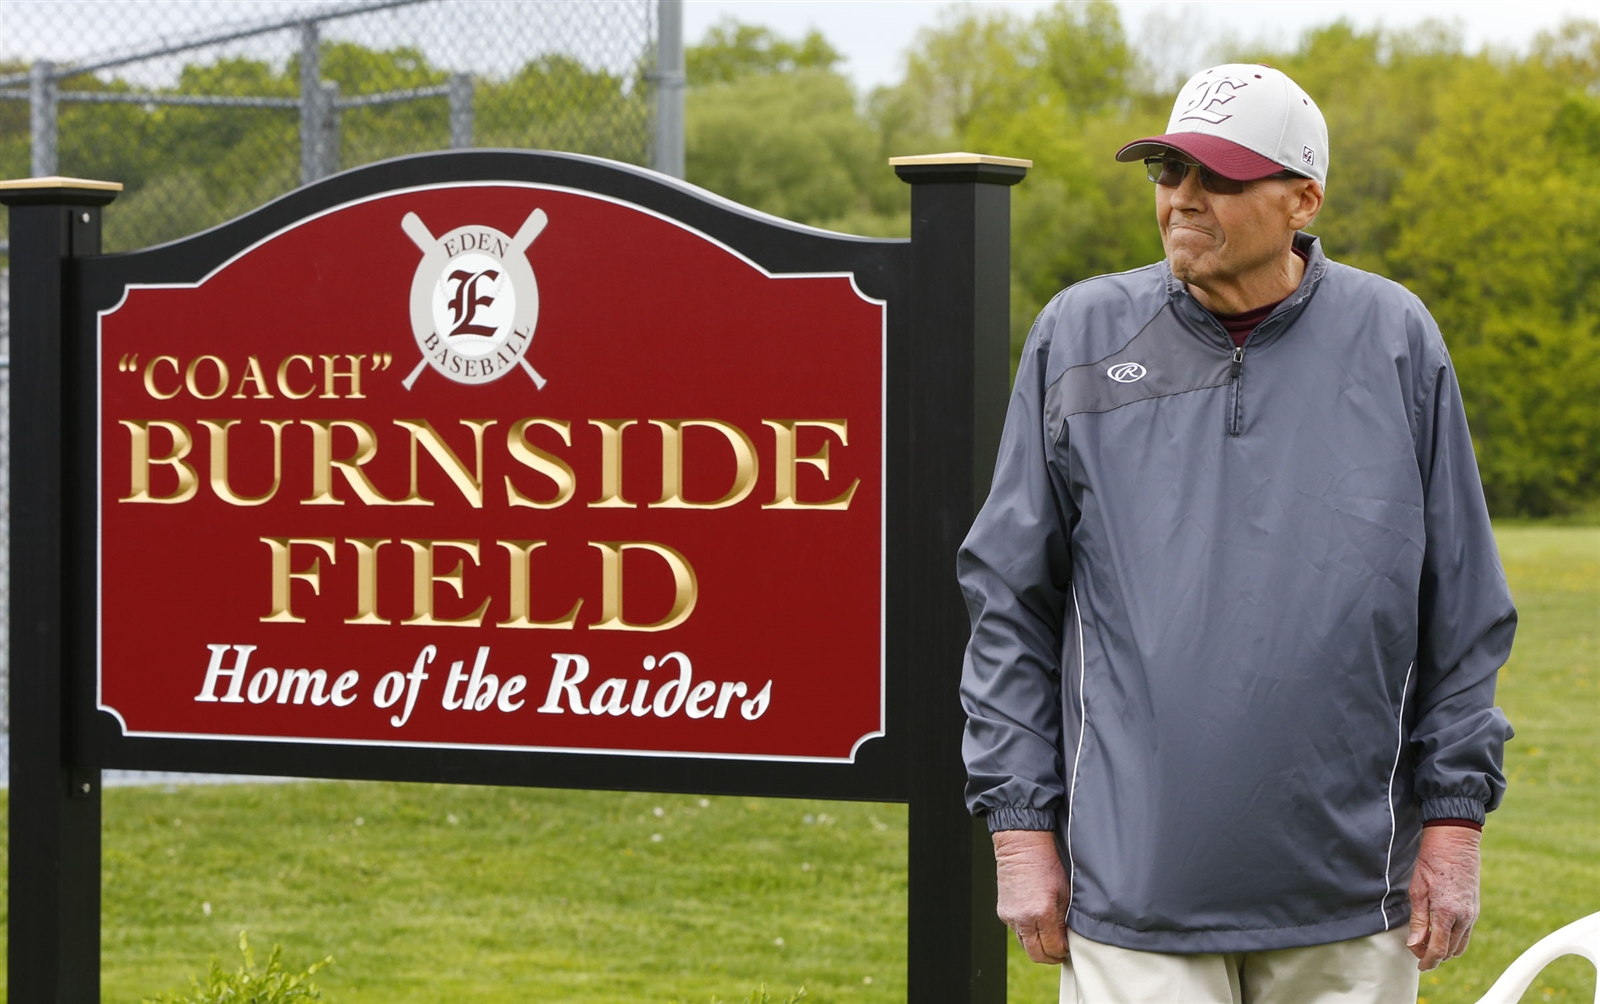 Robert Burnside coached with the Eden baseball program for more than half his life. He passed away at age 73 last Sunday. (Harry Scull Jr. / Buffalo News)